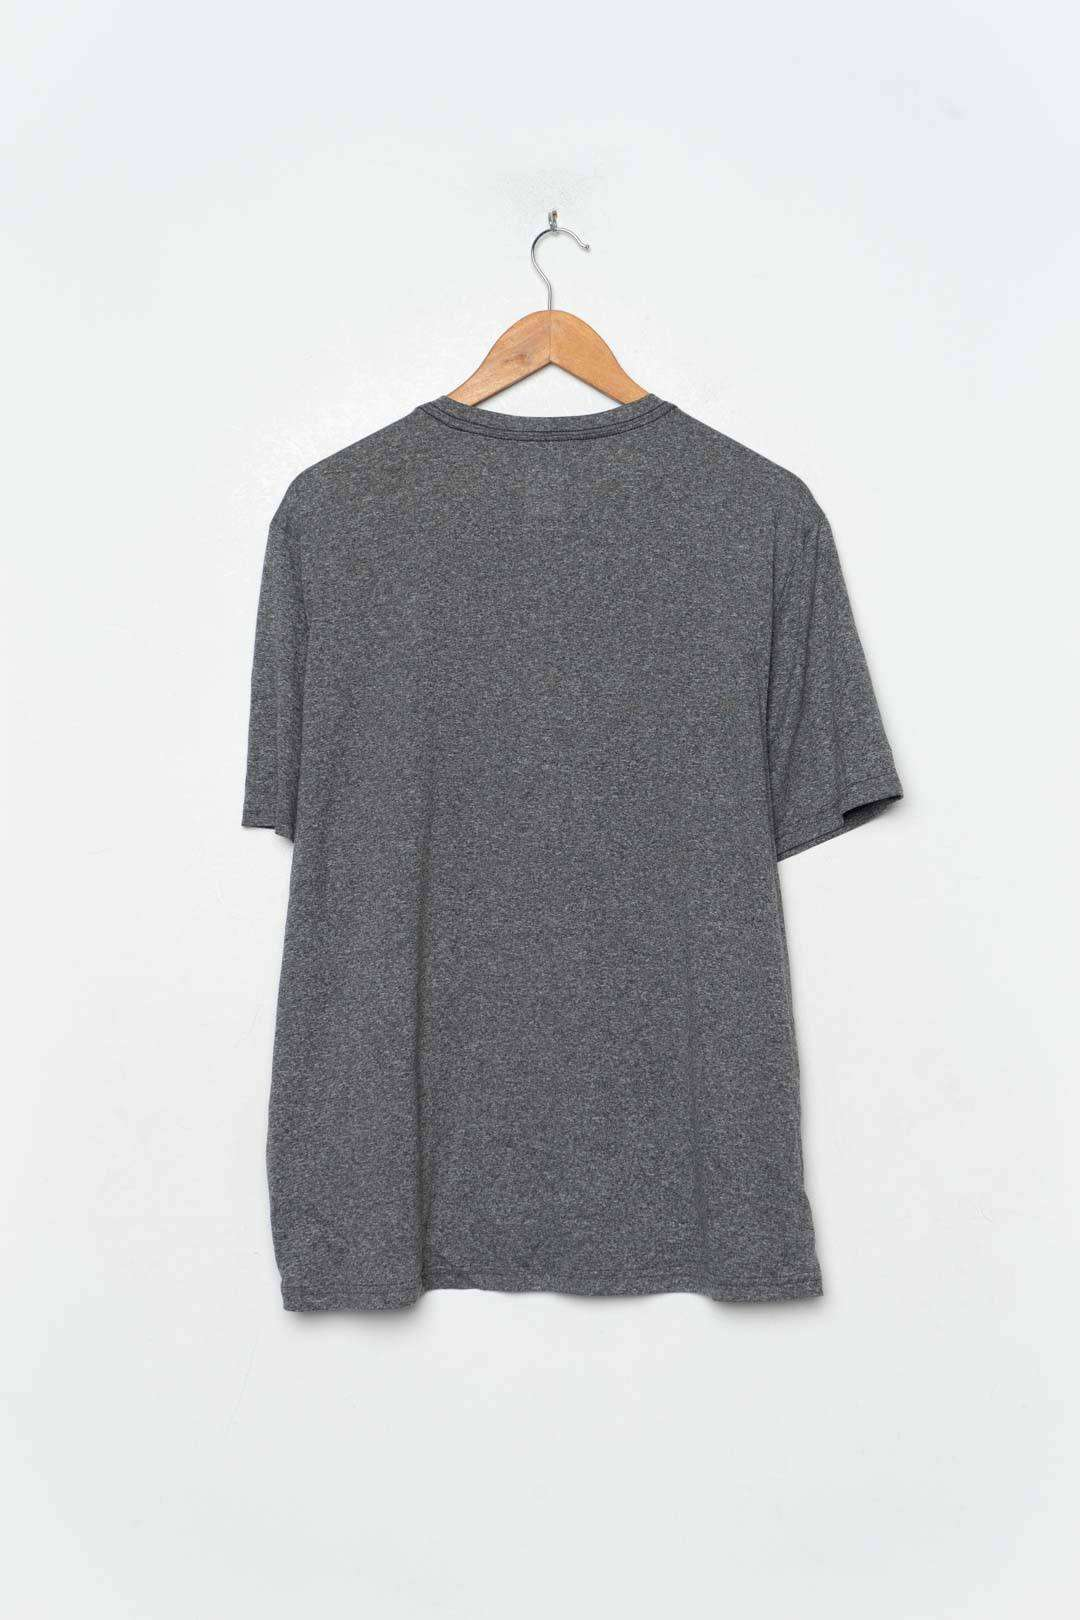 The North Face Grey Printed T-Shirt L - VinoKilo.com